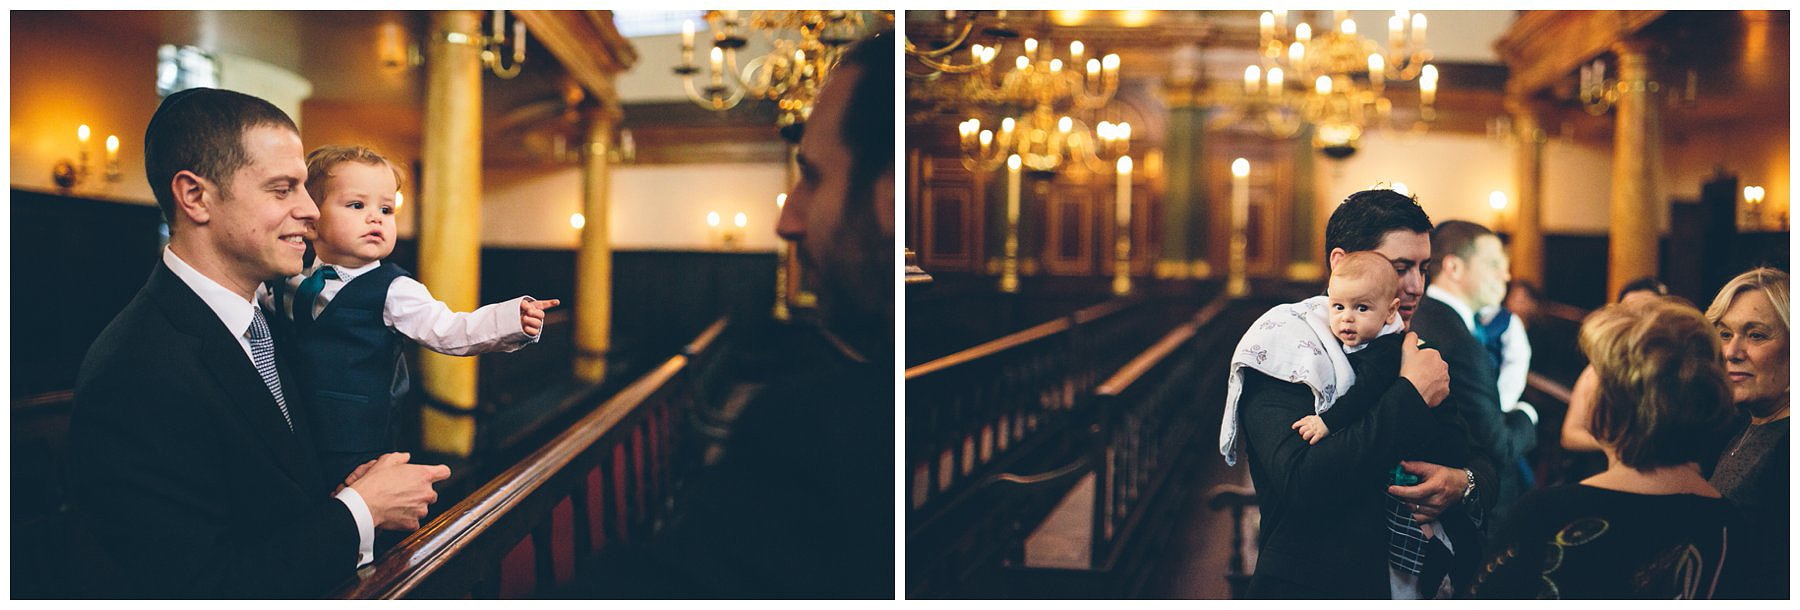 Bevis_Marks_Synagogue_Wedding_Photography_0032